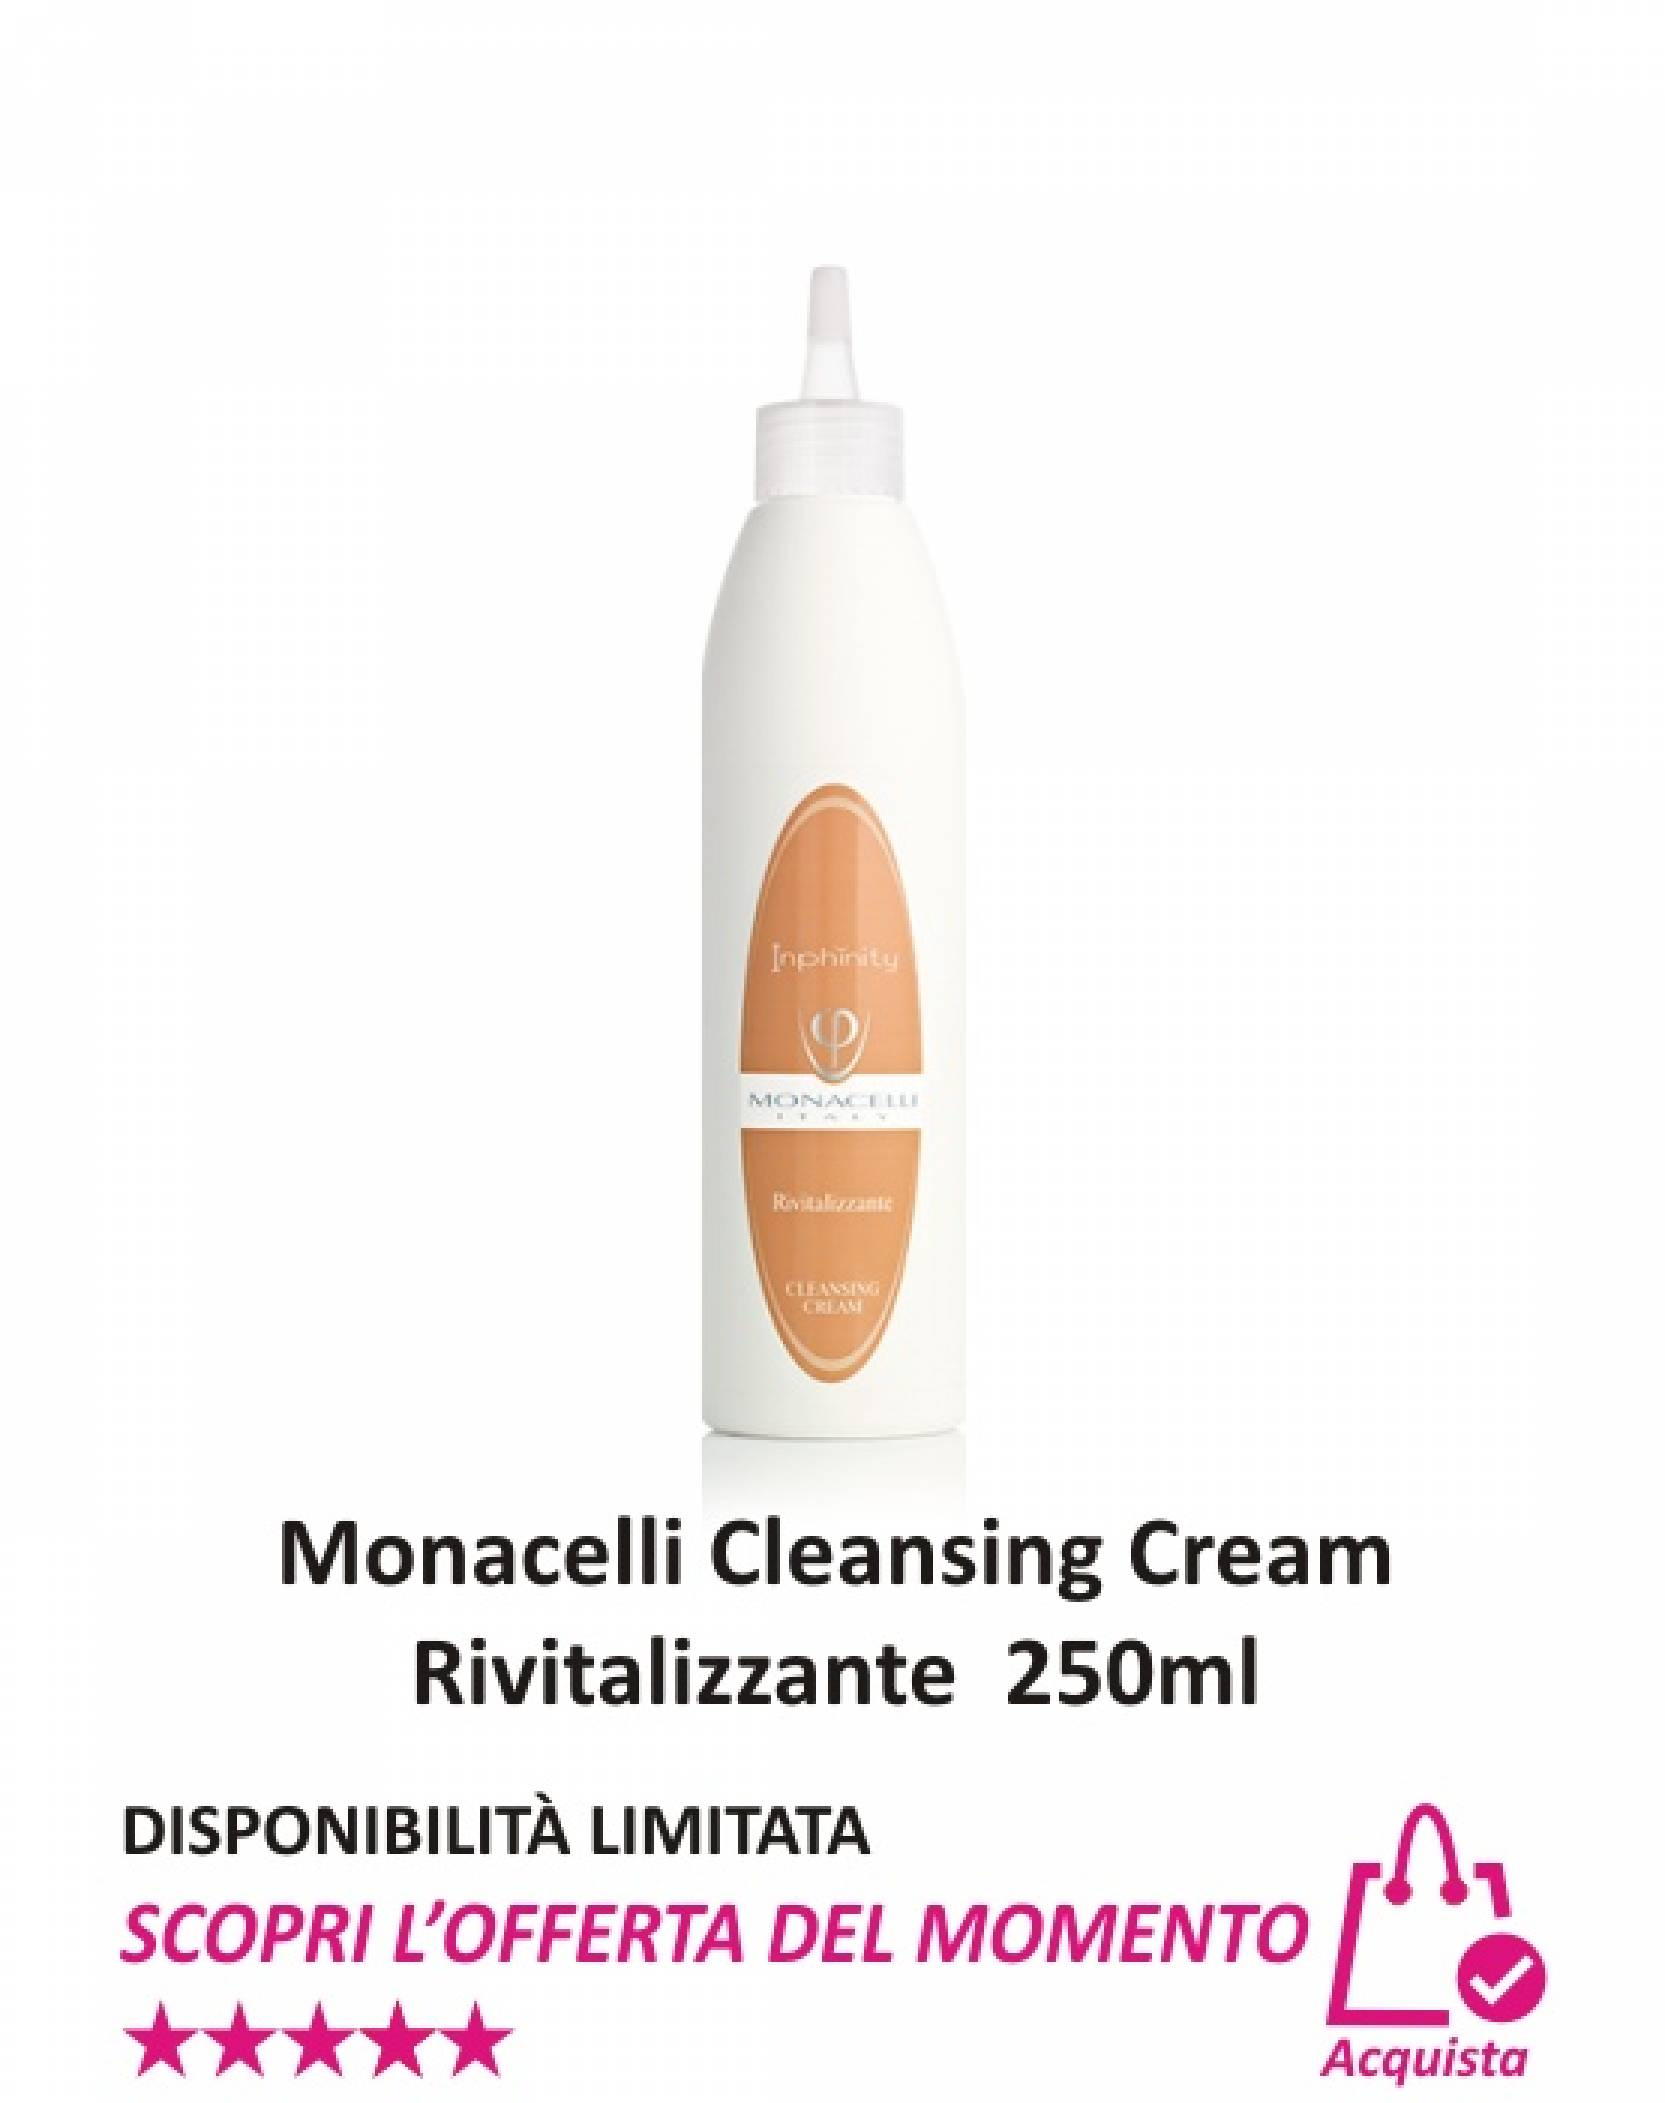 Monacelli Cleansing Cream Rivitalizzante 250 ml